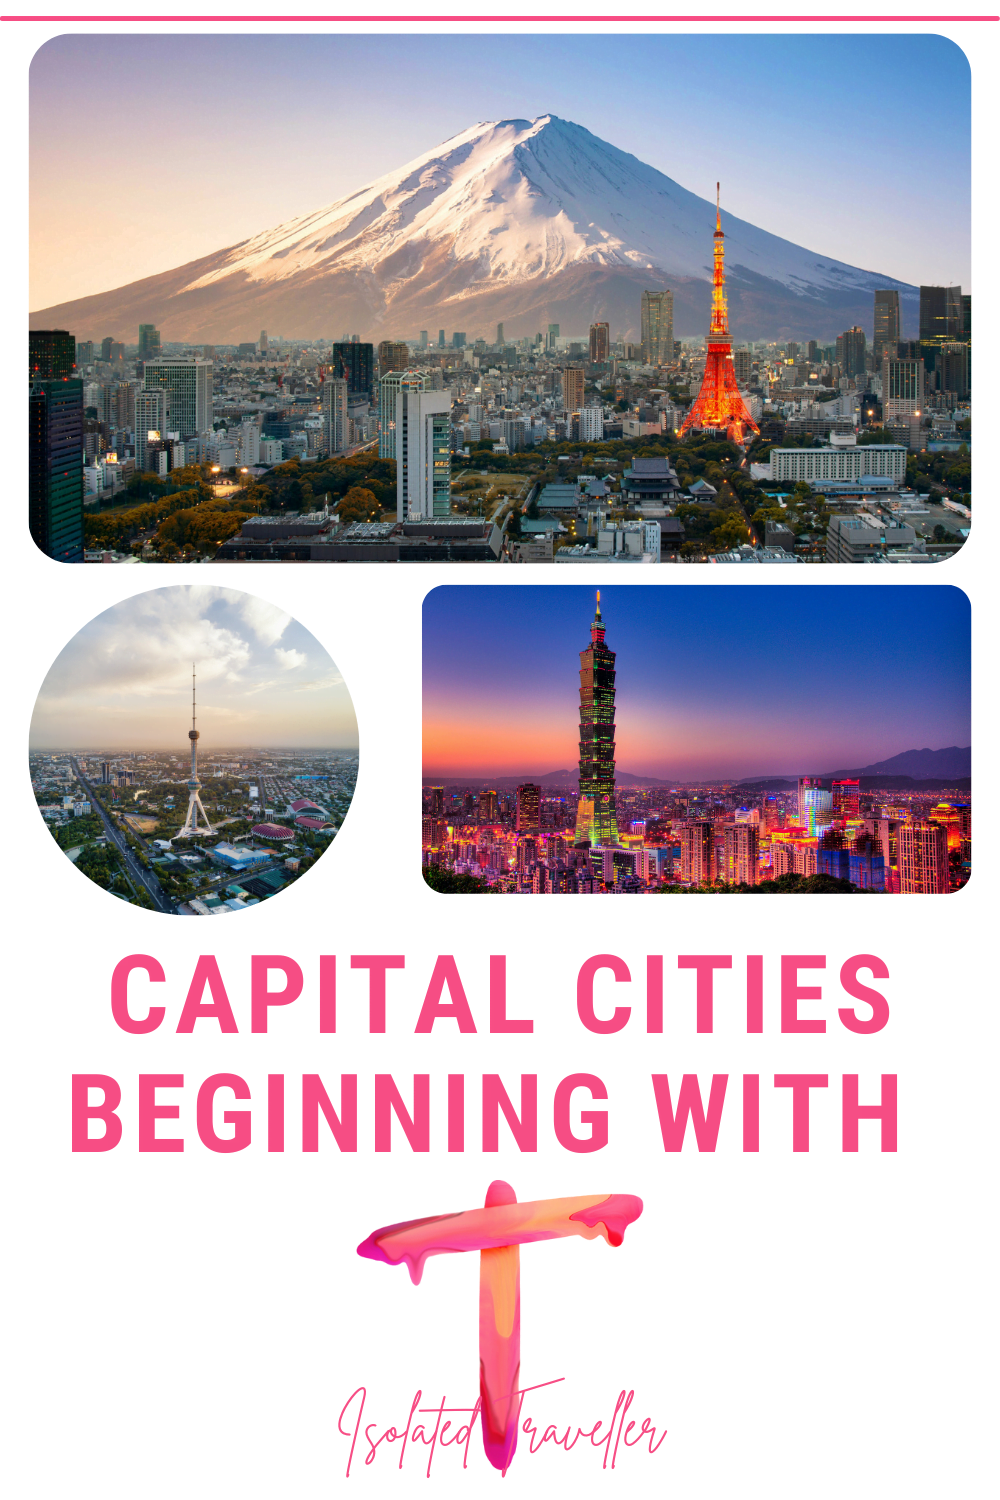 Capital Cities beginning with T